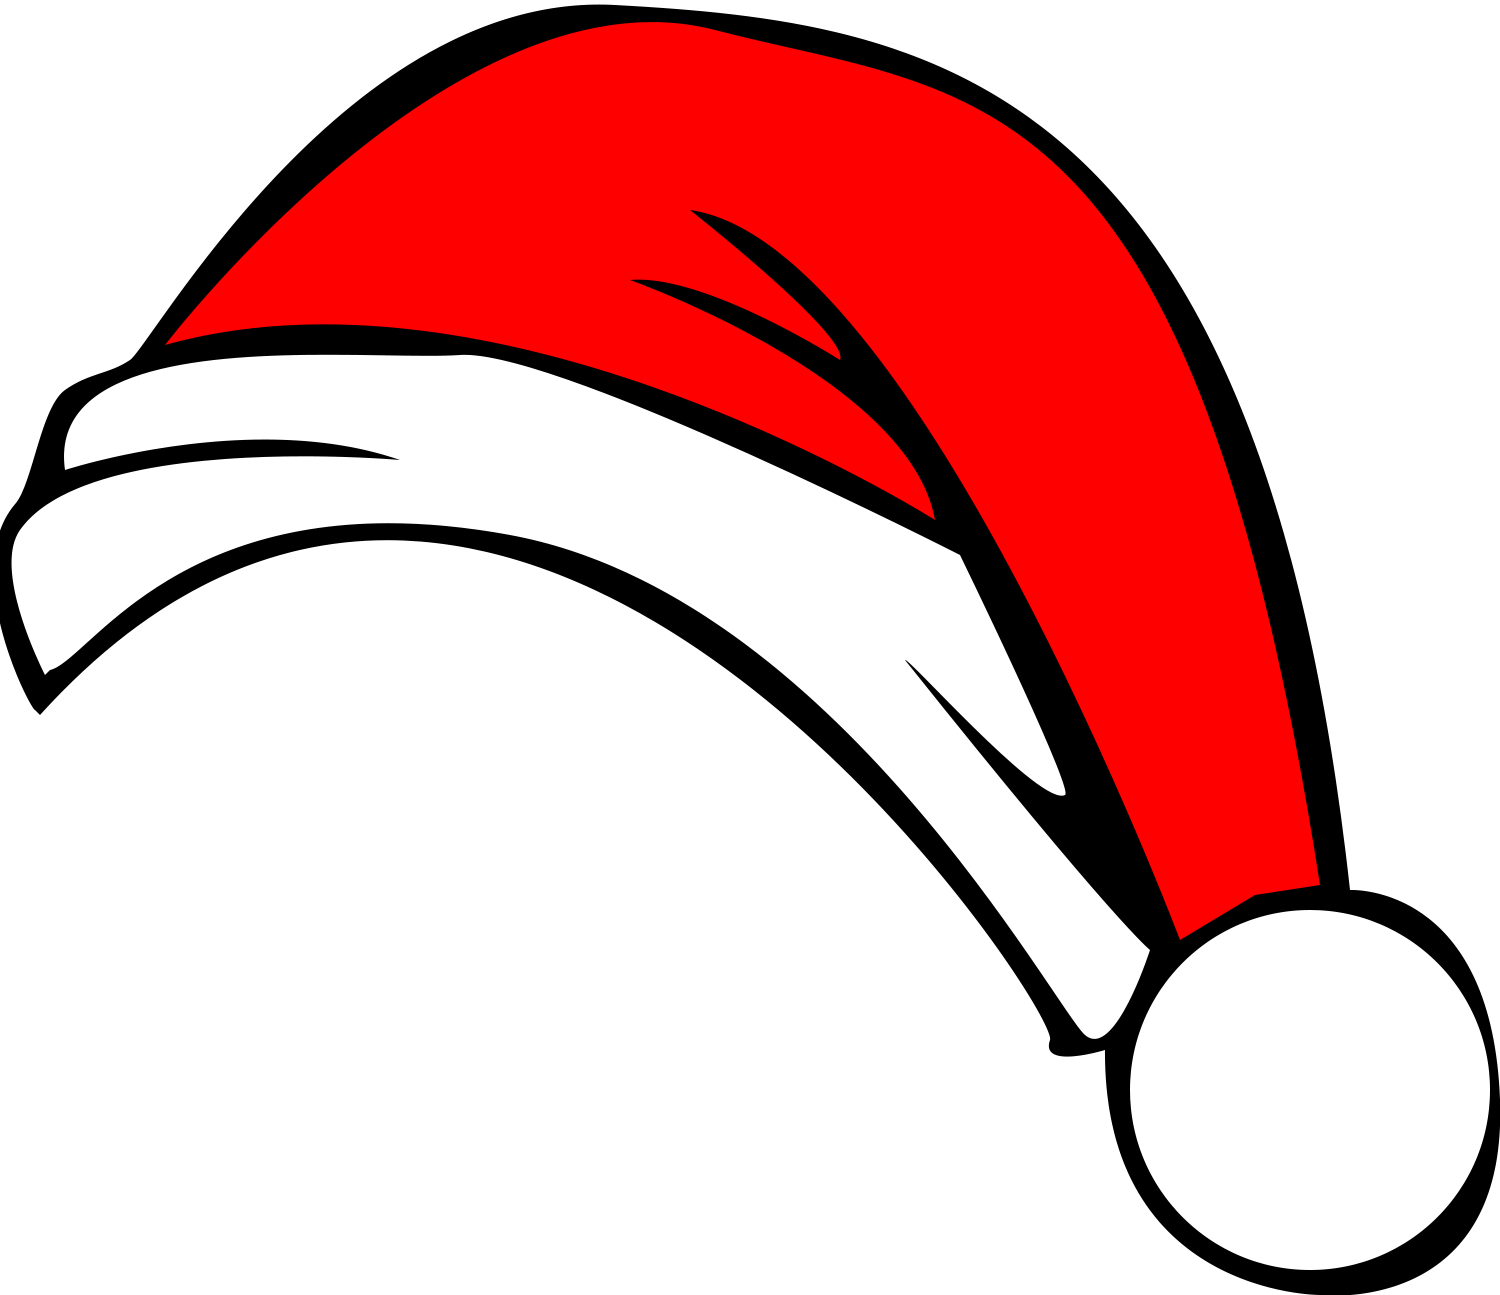 Cool clipart christmas.  collection of hat